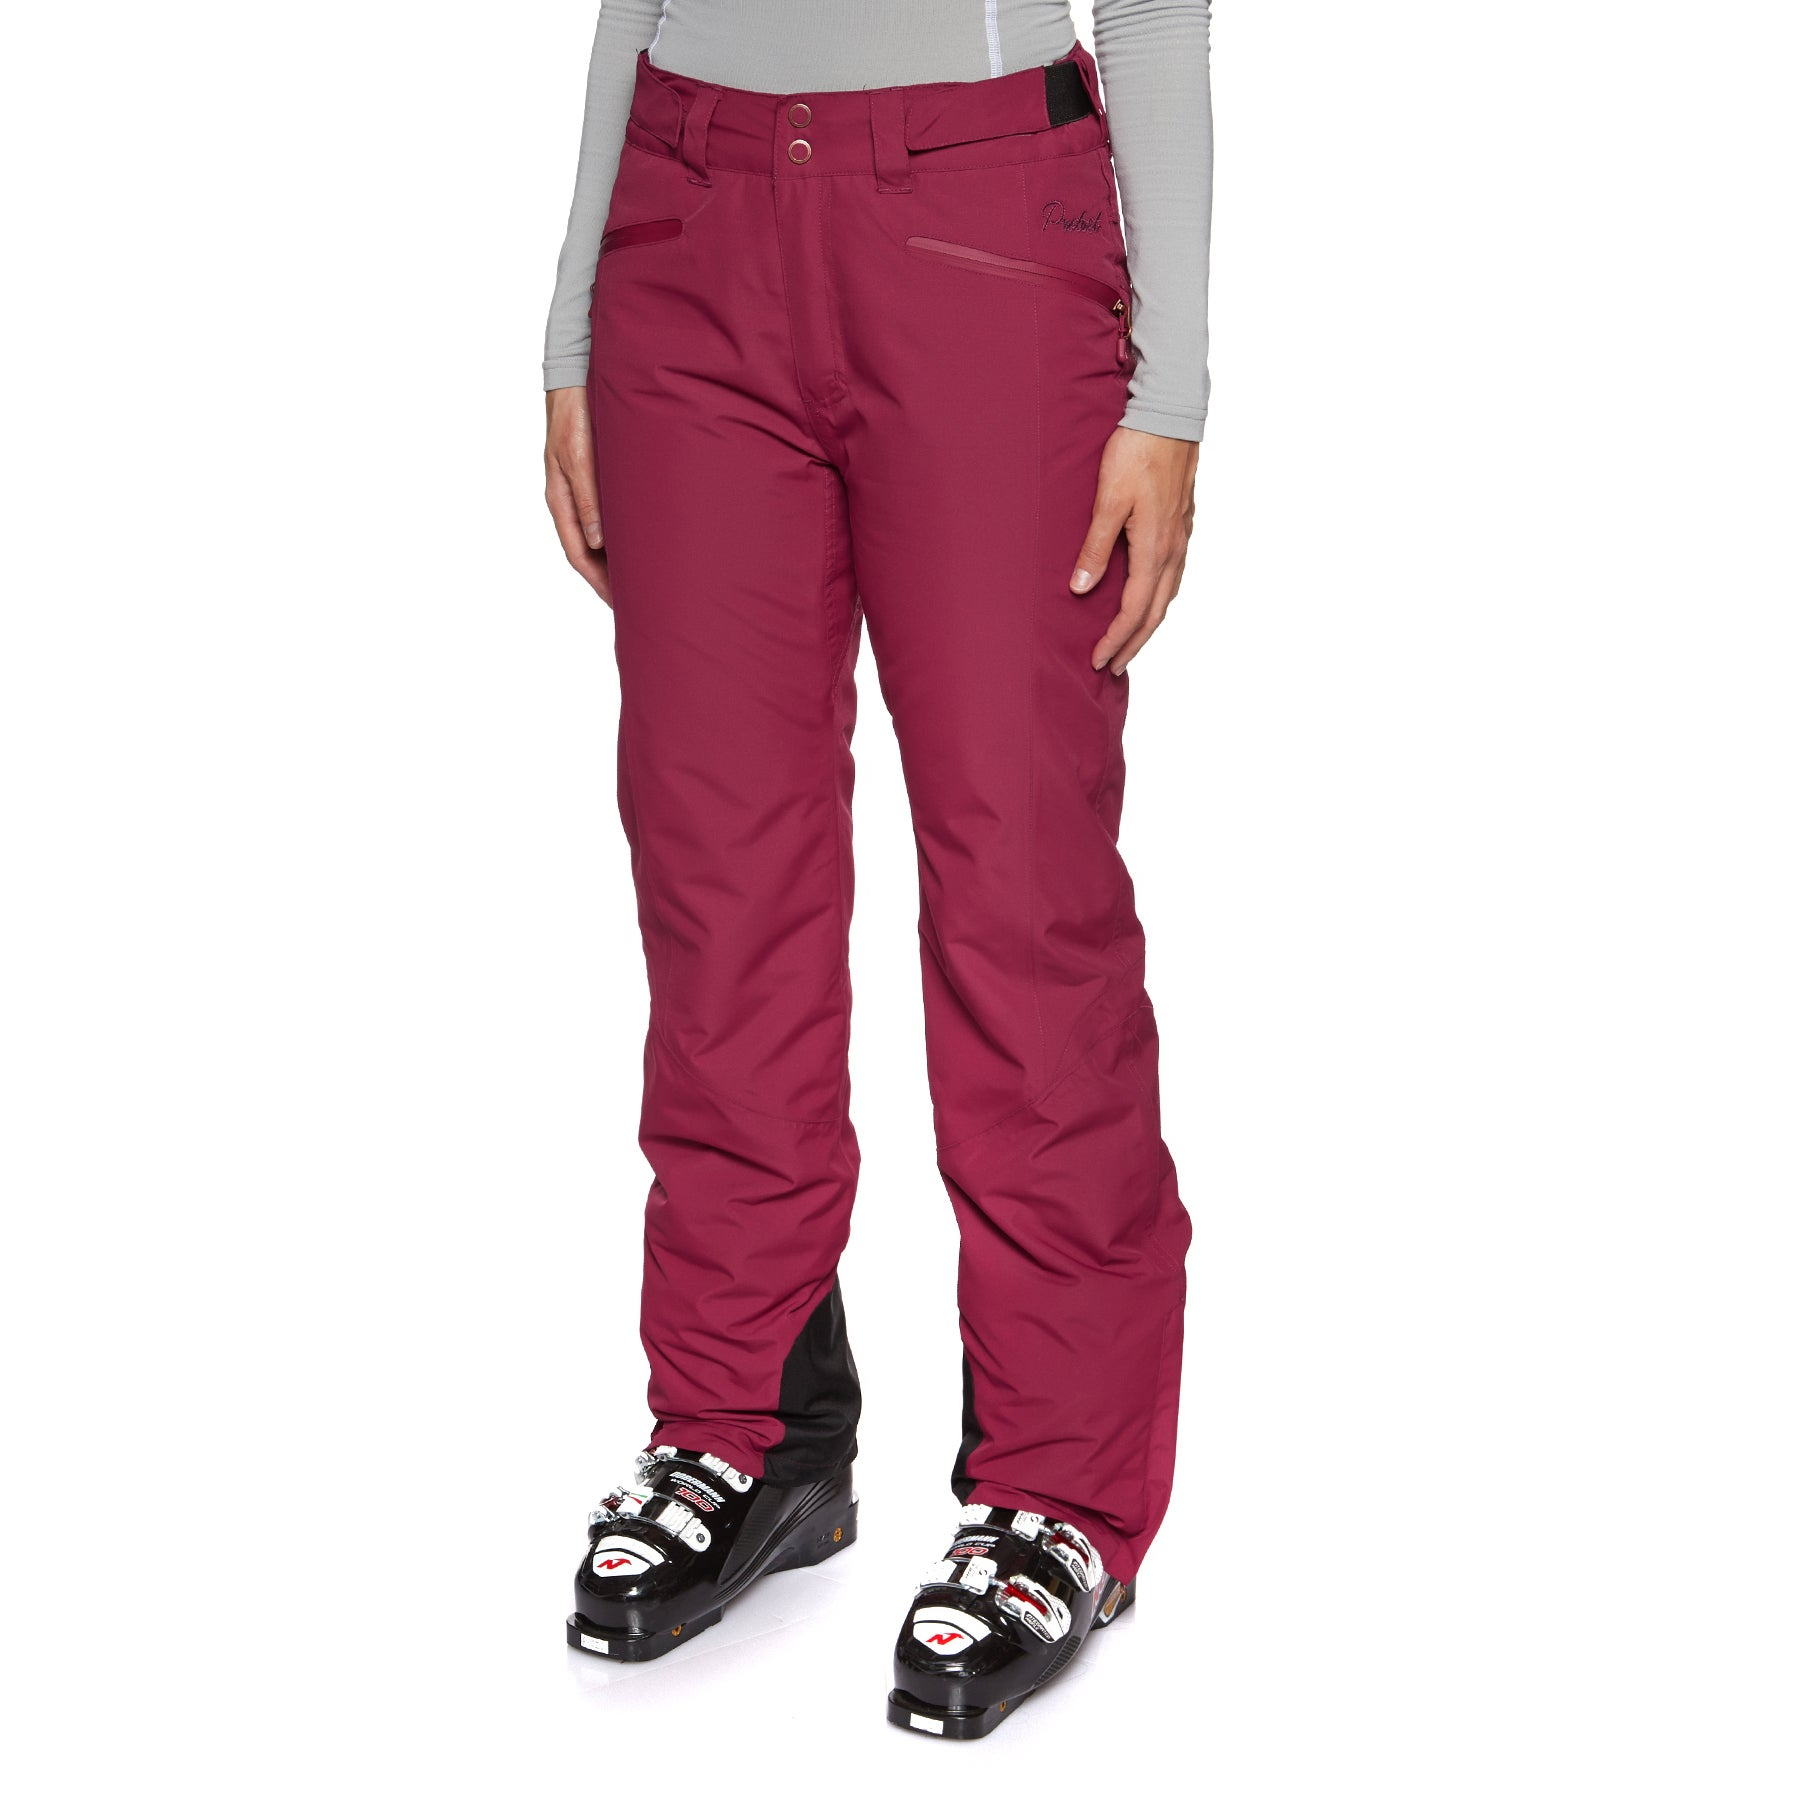 Protest Kensington Womens Snow Pant - Beet Red